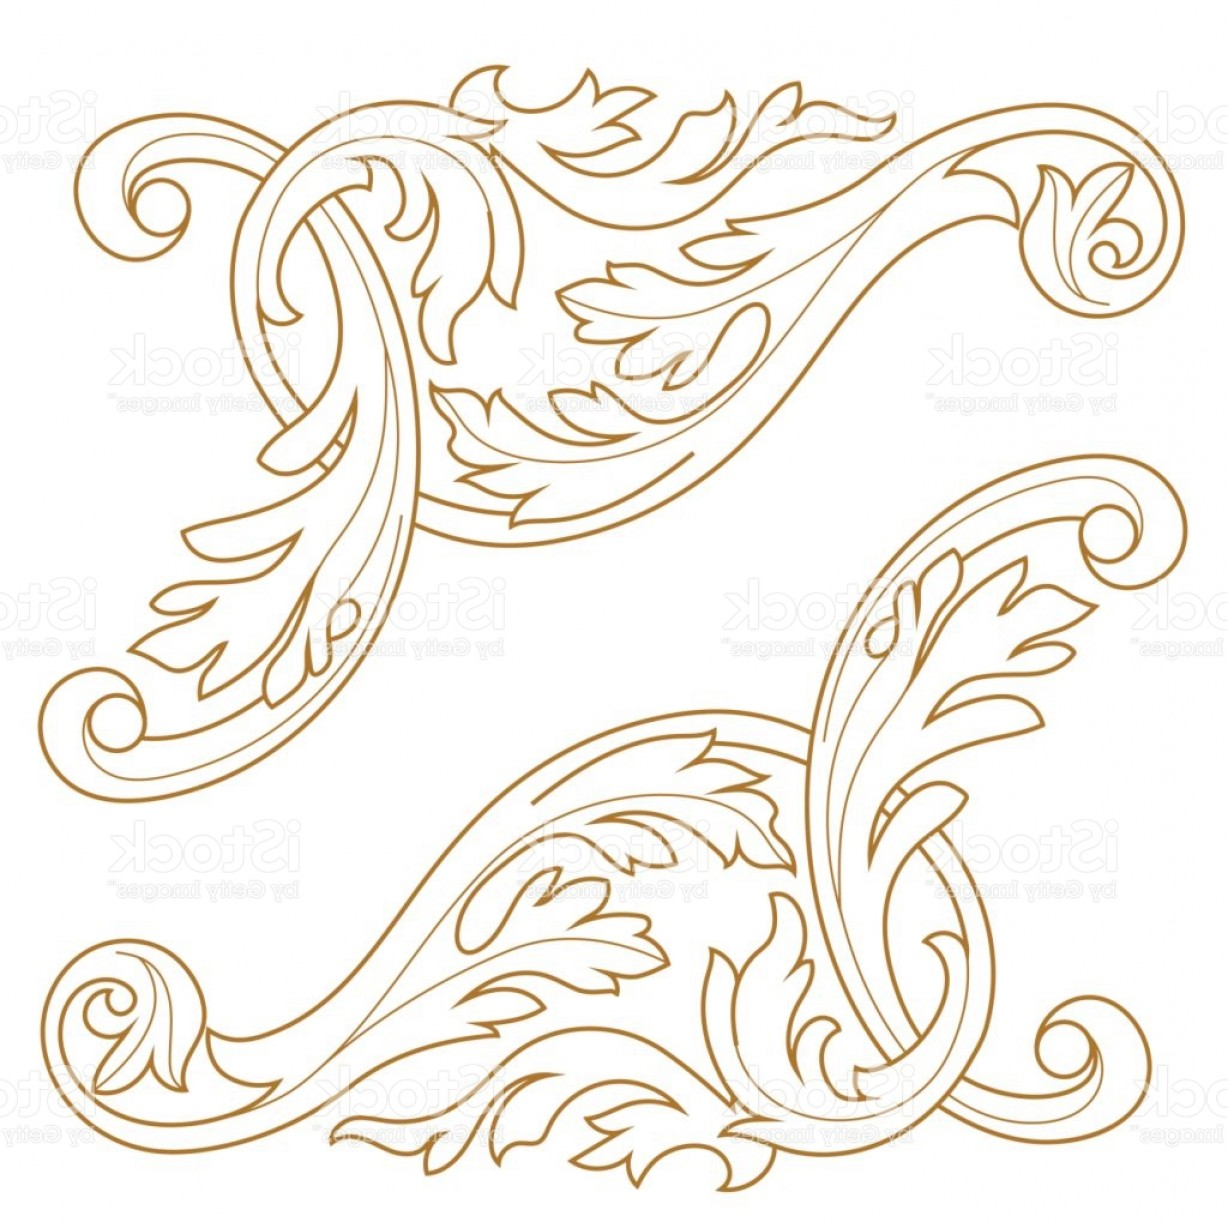 Baroque Vector Clip Art: Baroque Vector Vintage Elements For Design Decorative Design Element Filigree Gm